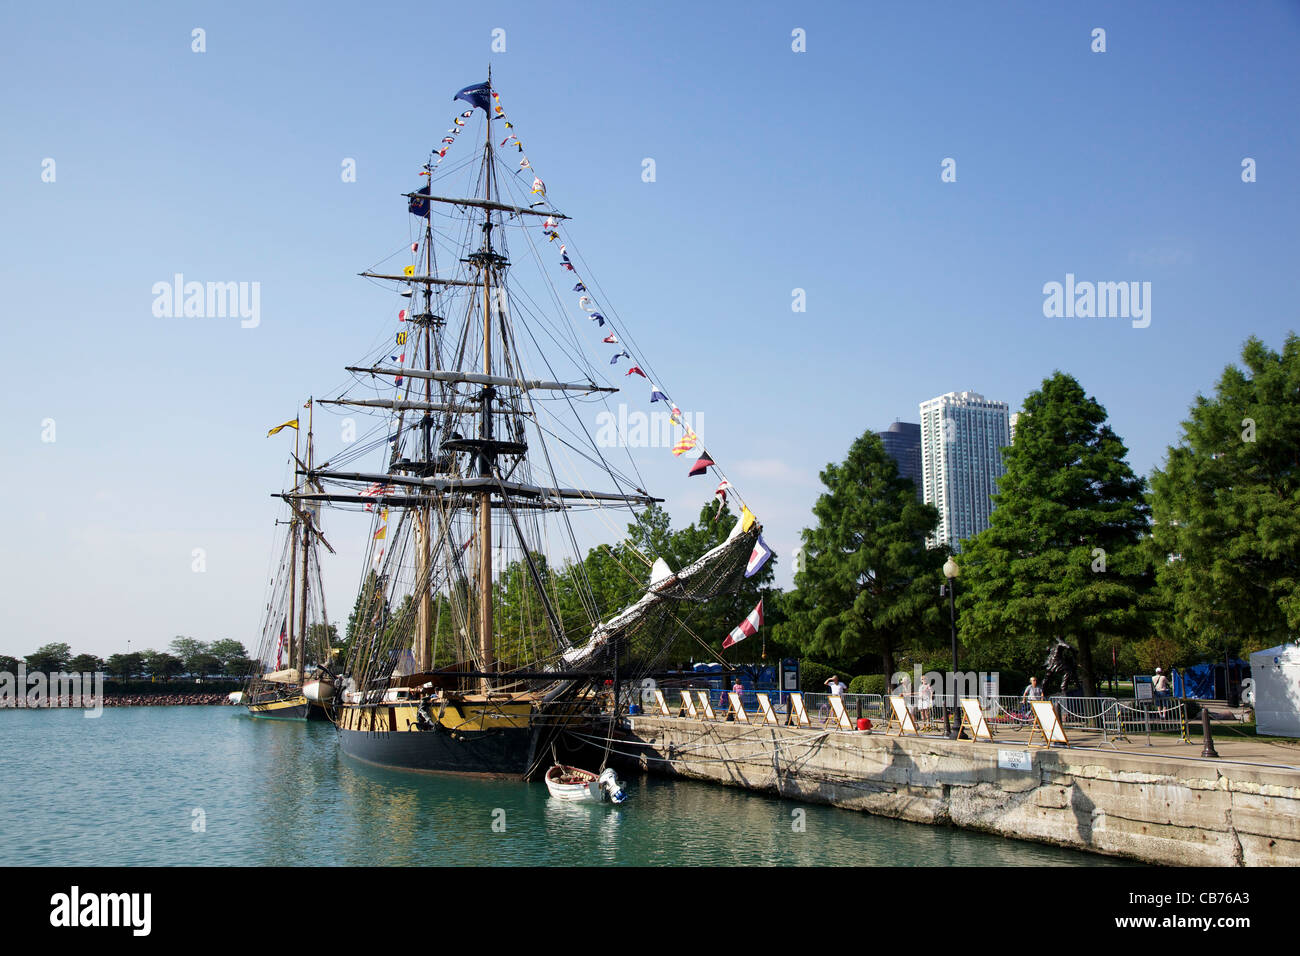 The Niagara and the Pride of Baltimore. Tall Ships 2011 Navy Pier, Chicago, Illinois. - Stock Image